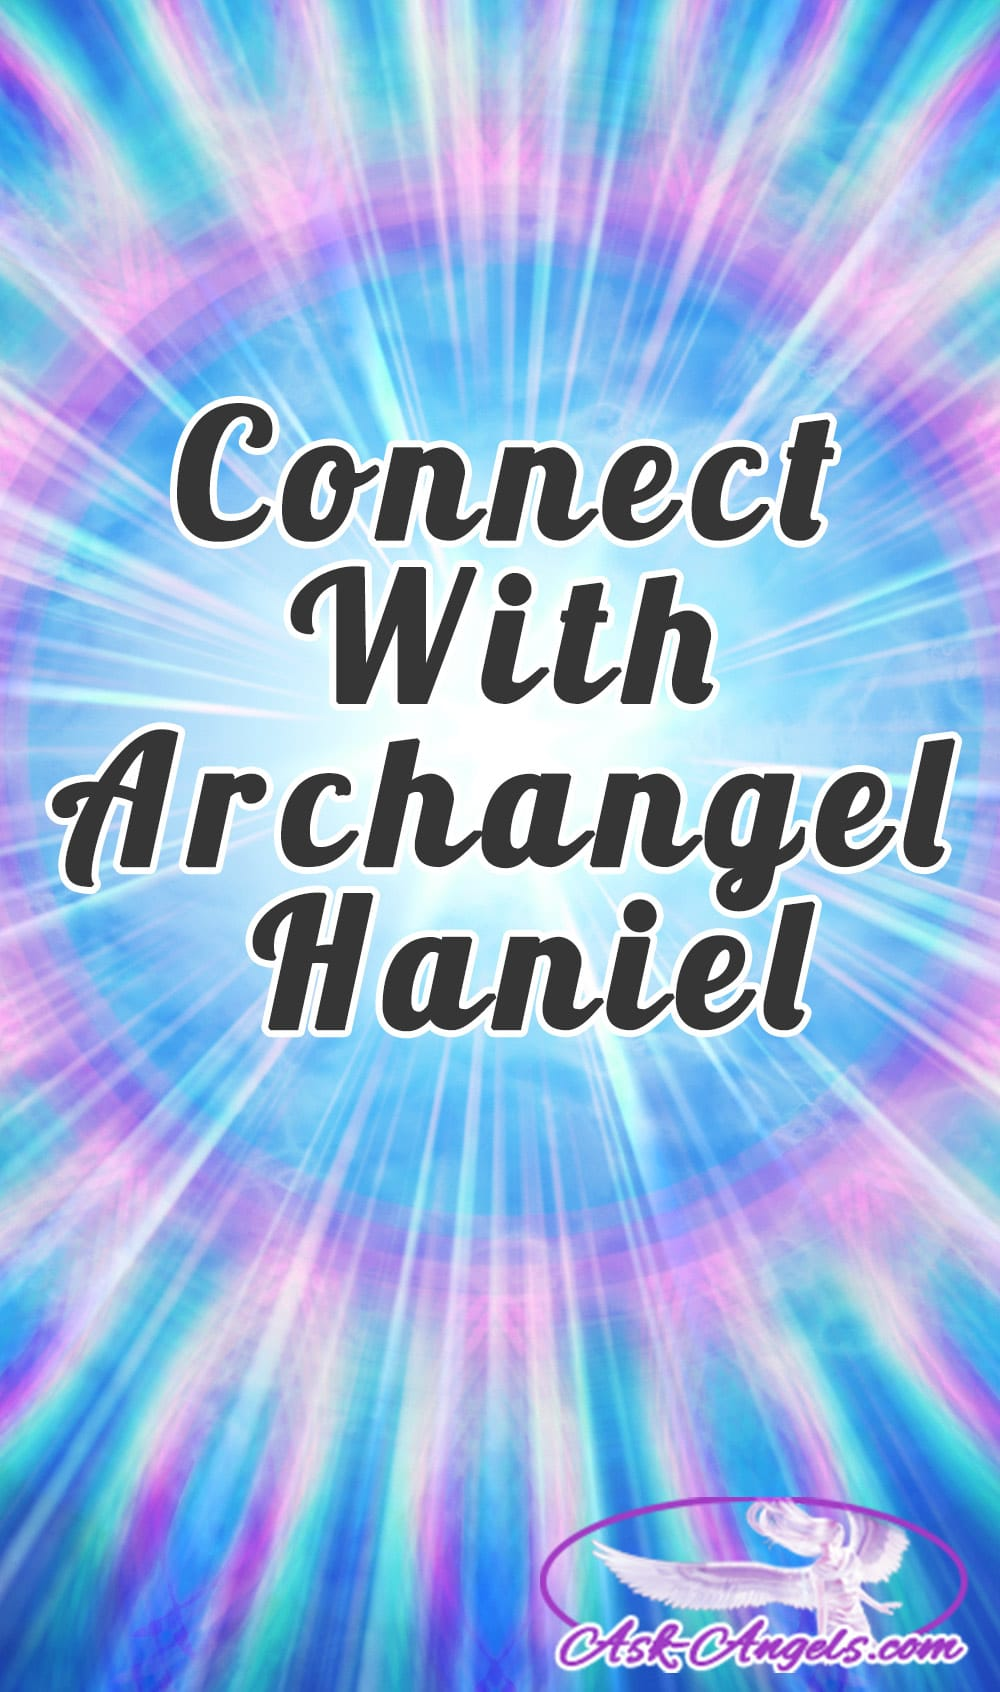 Connect with Archangel Haniel